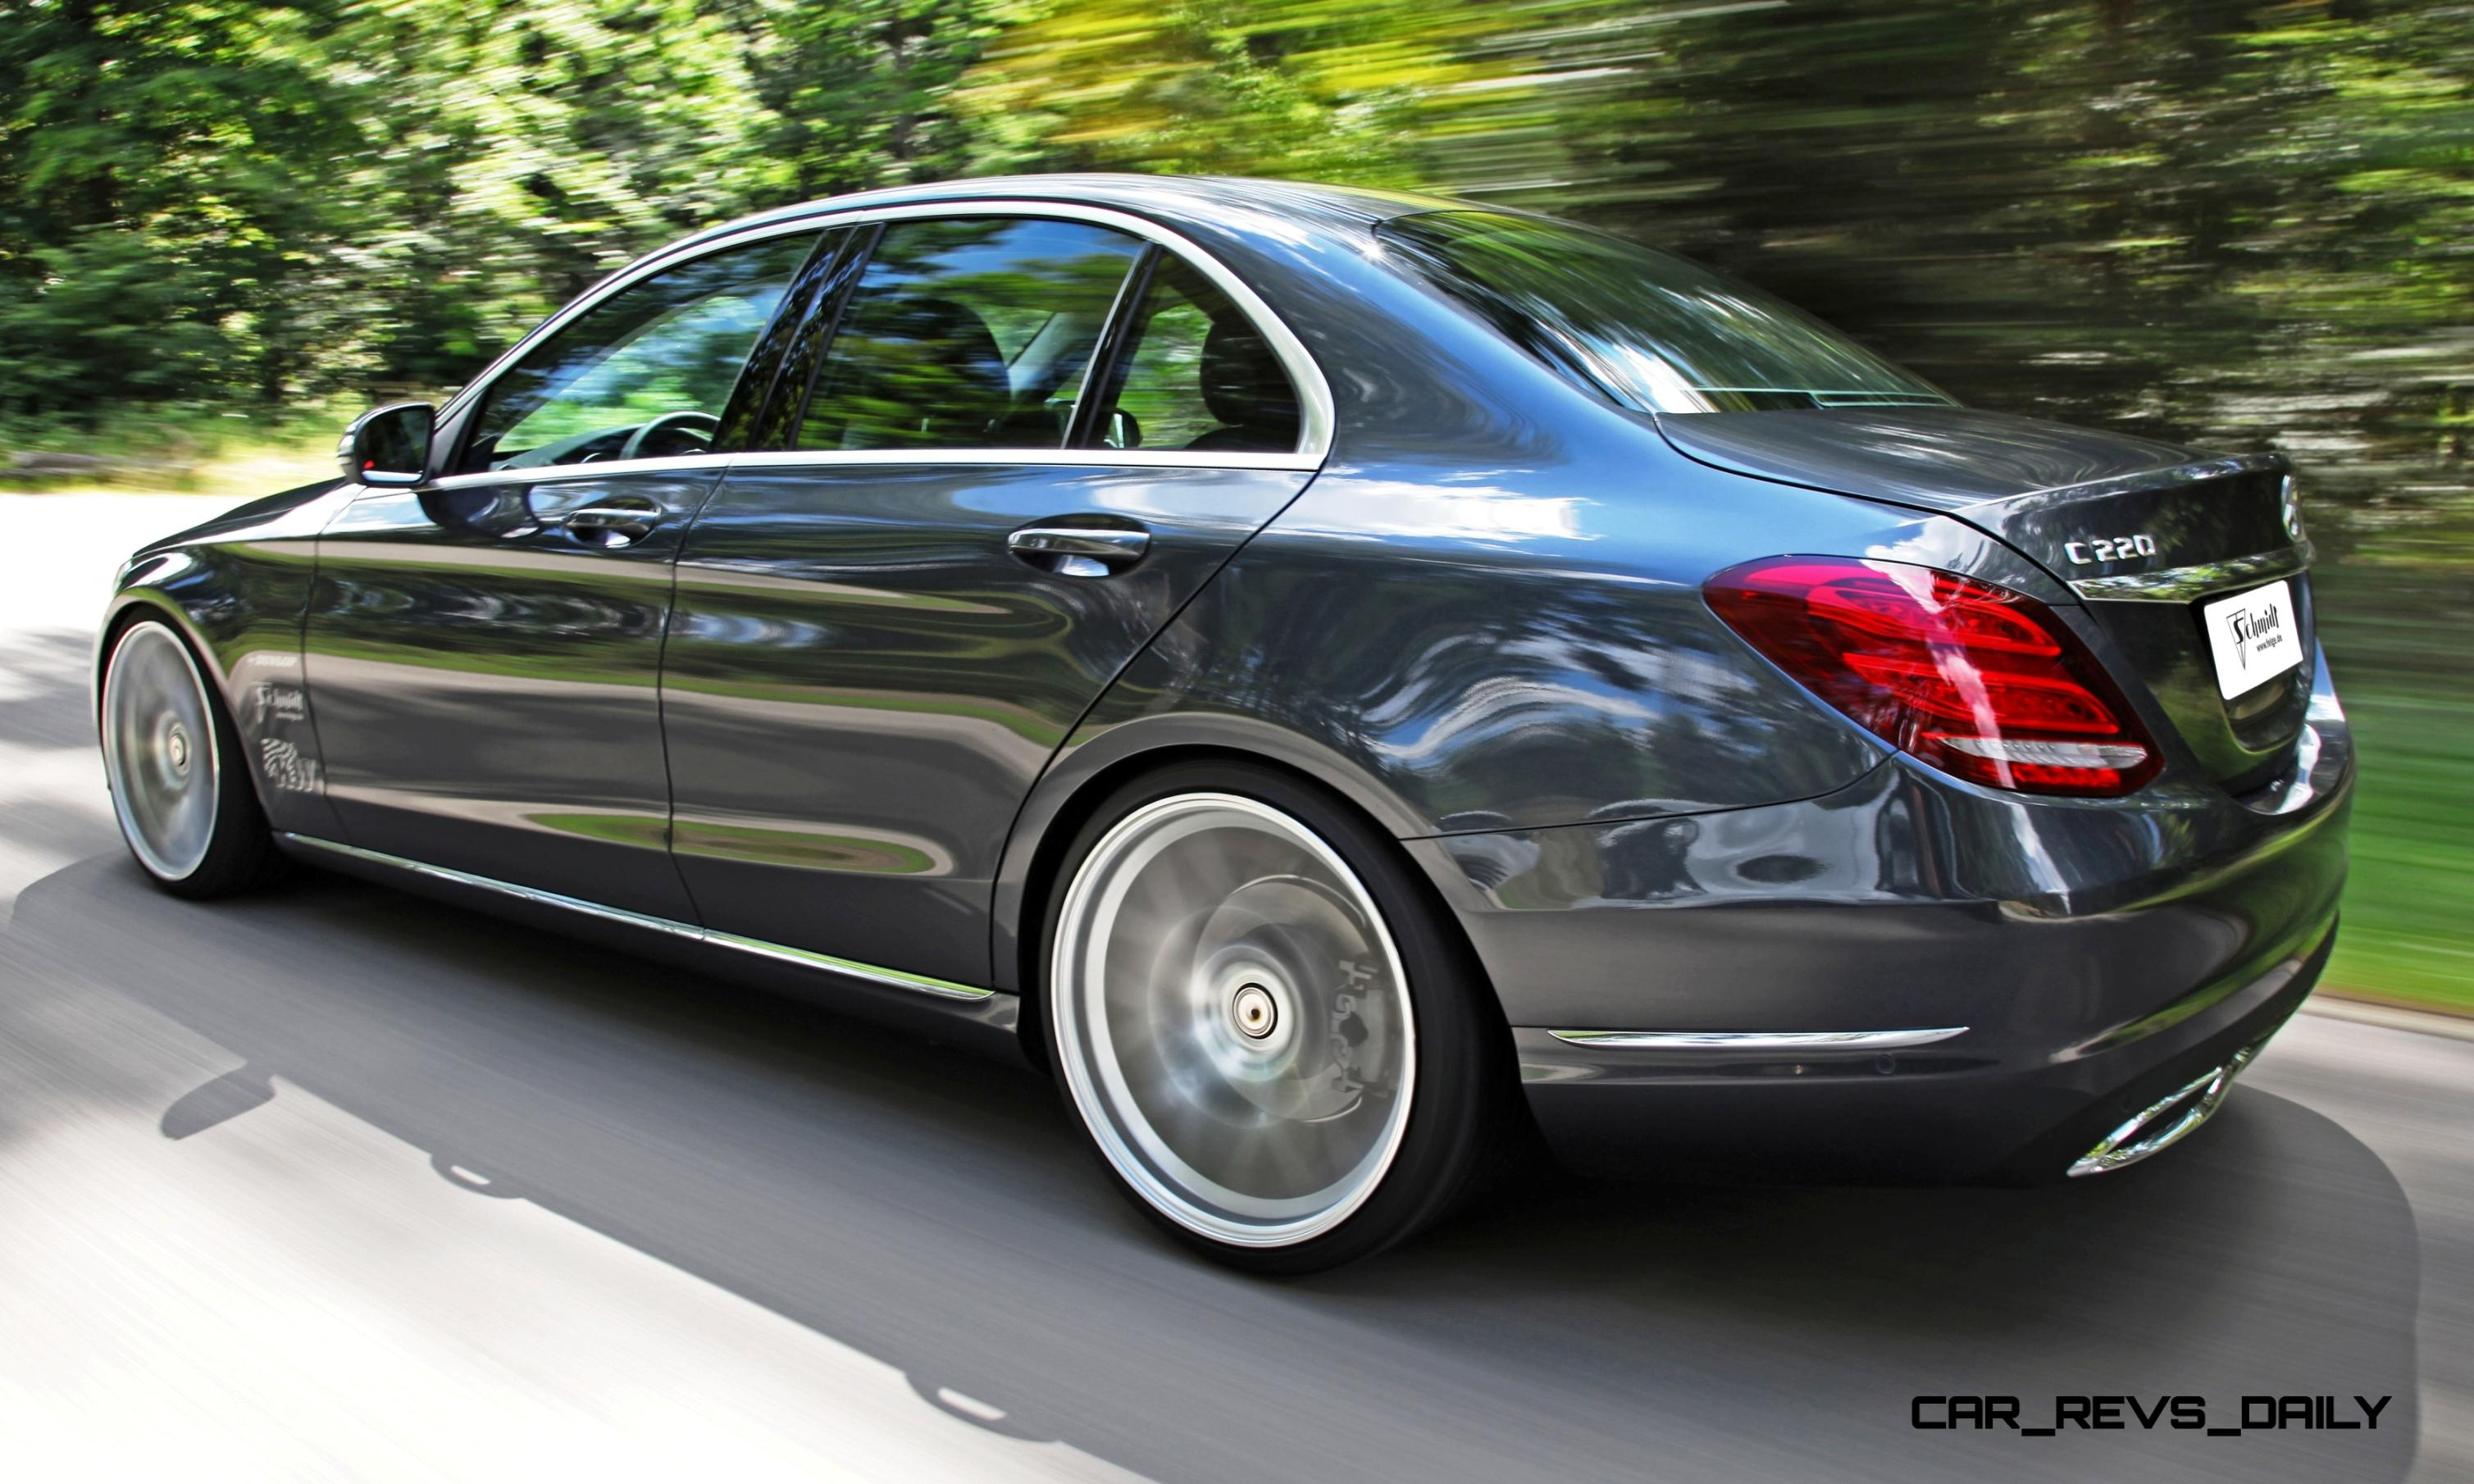 Mercedes c400 airmatic or not 2017 2018 best cars reviews - Mercedes C400 Airmatic Or Not 2017 2018 Best Cars Reviews Gallery